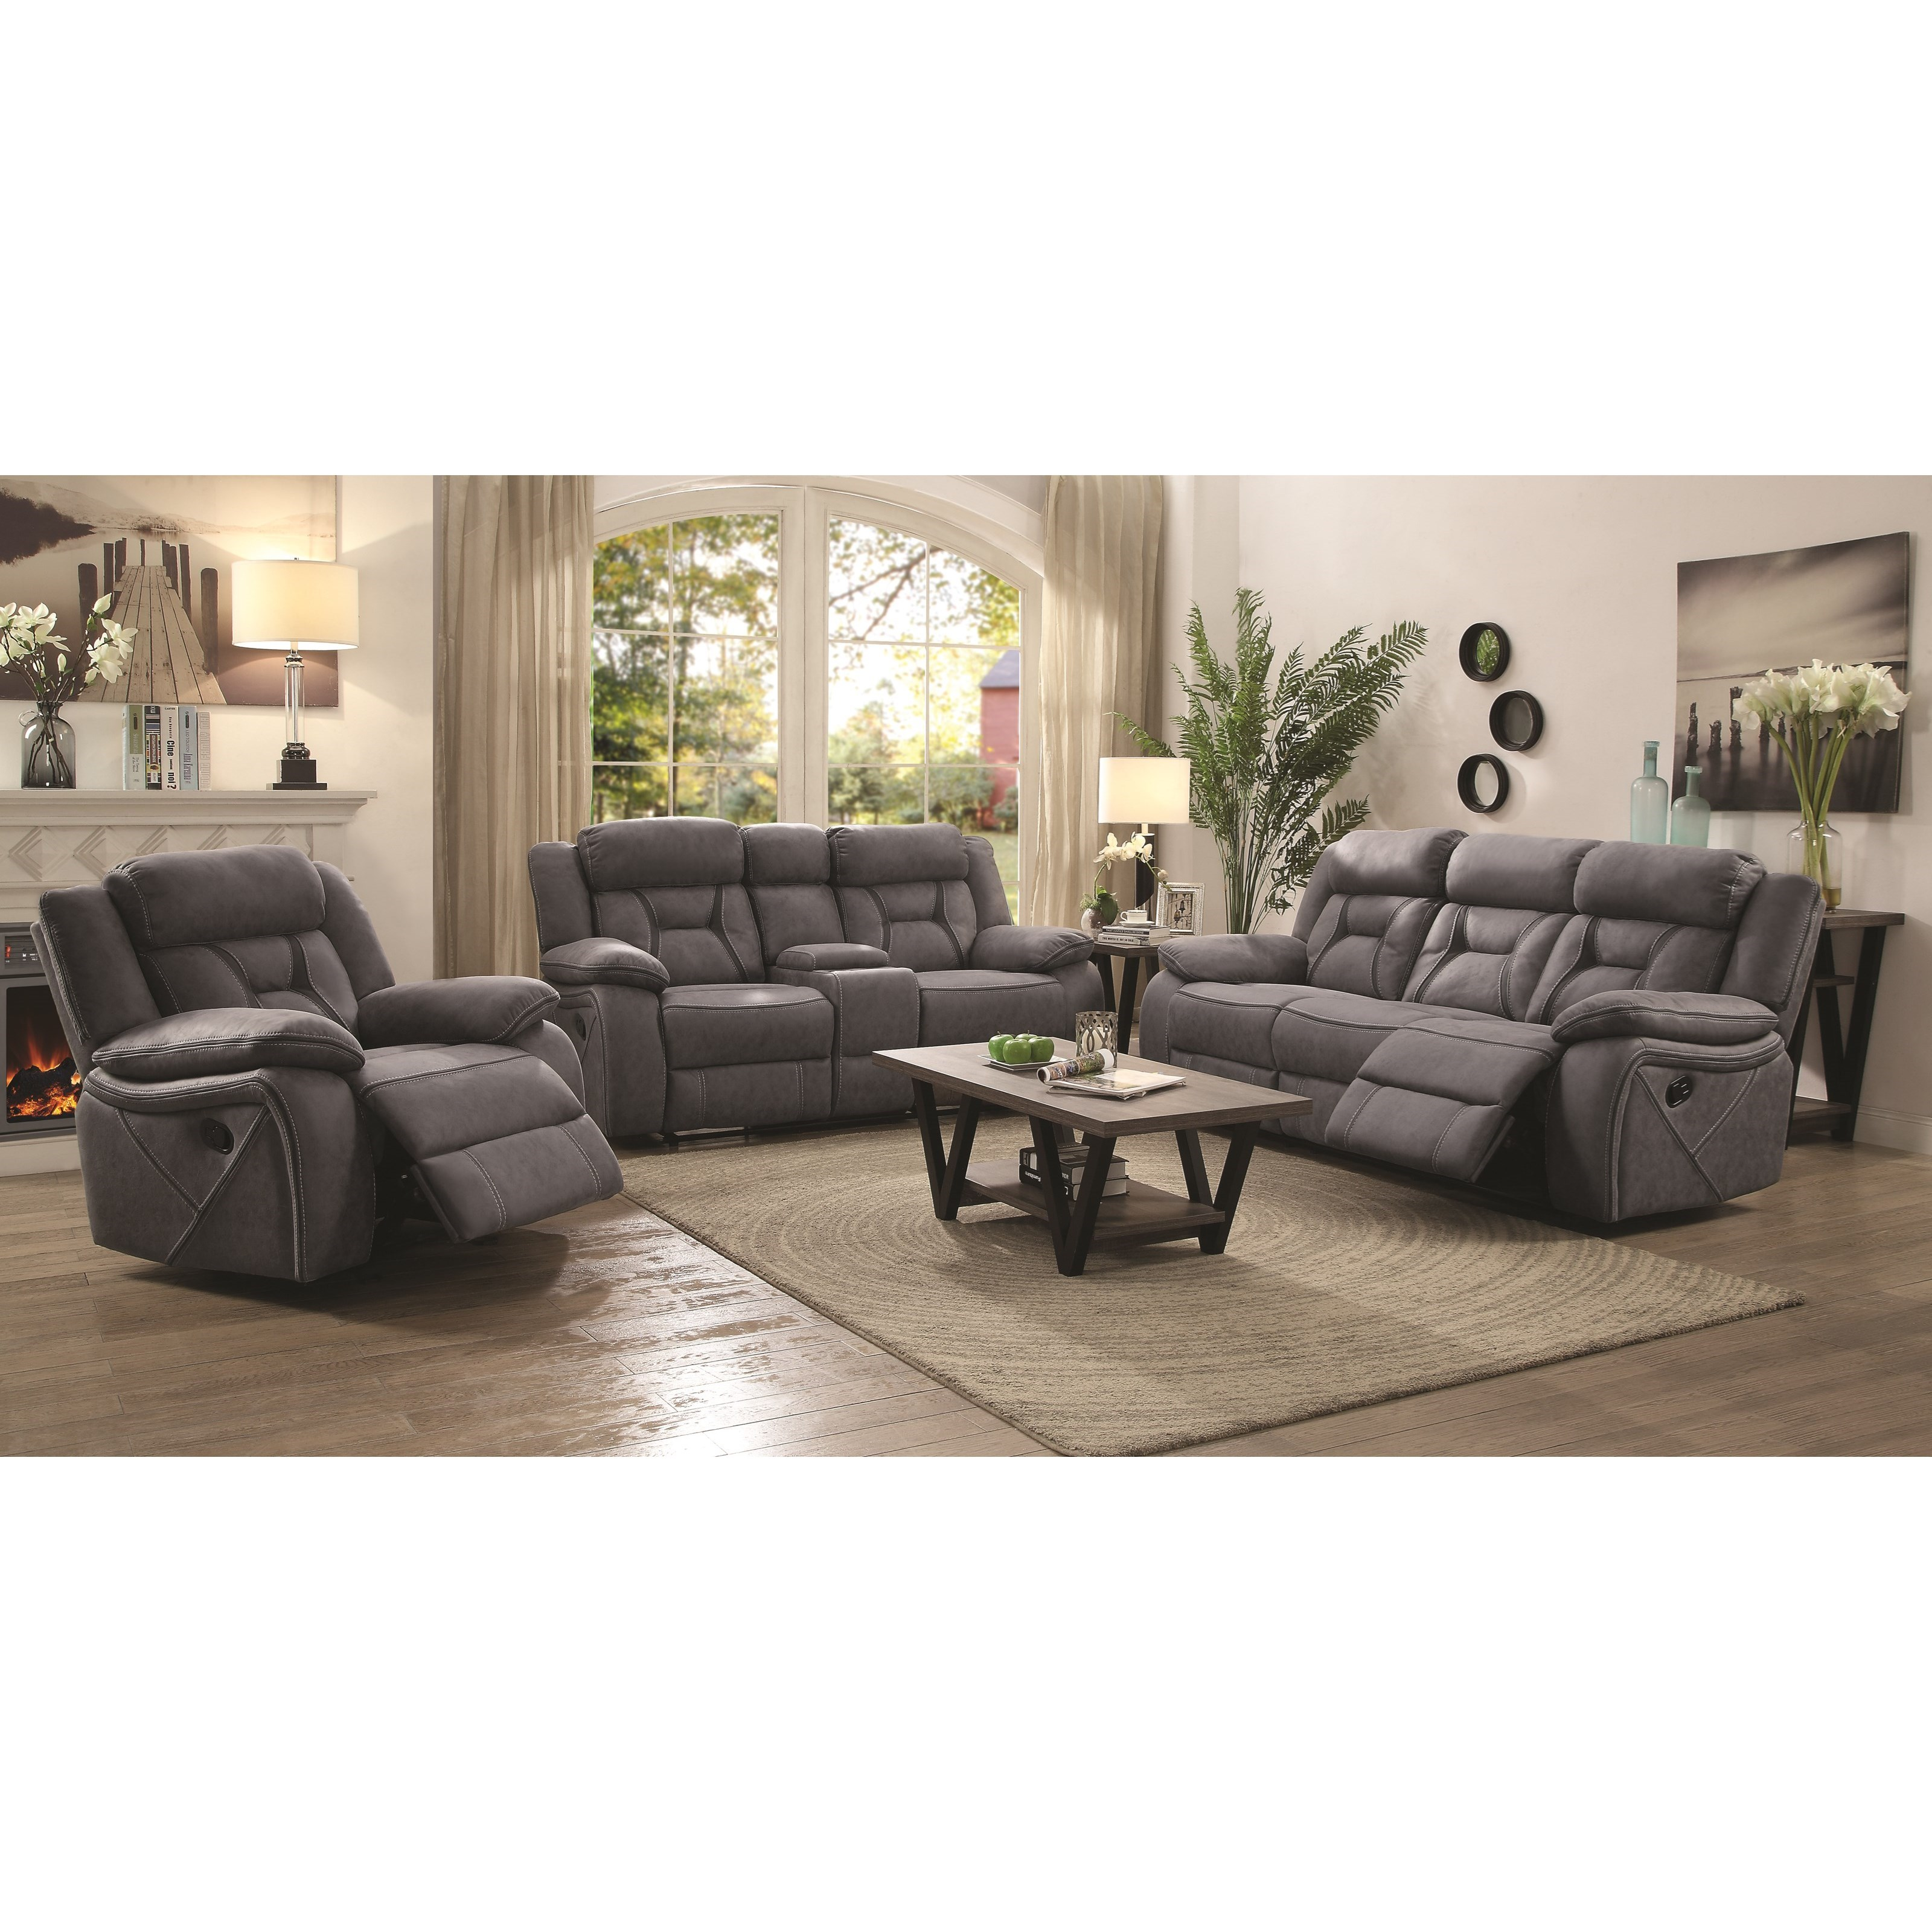 Coaster houston reclining living room group miskelly for Living room furniture groups